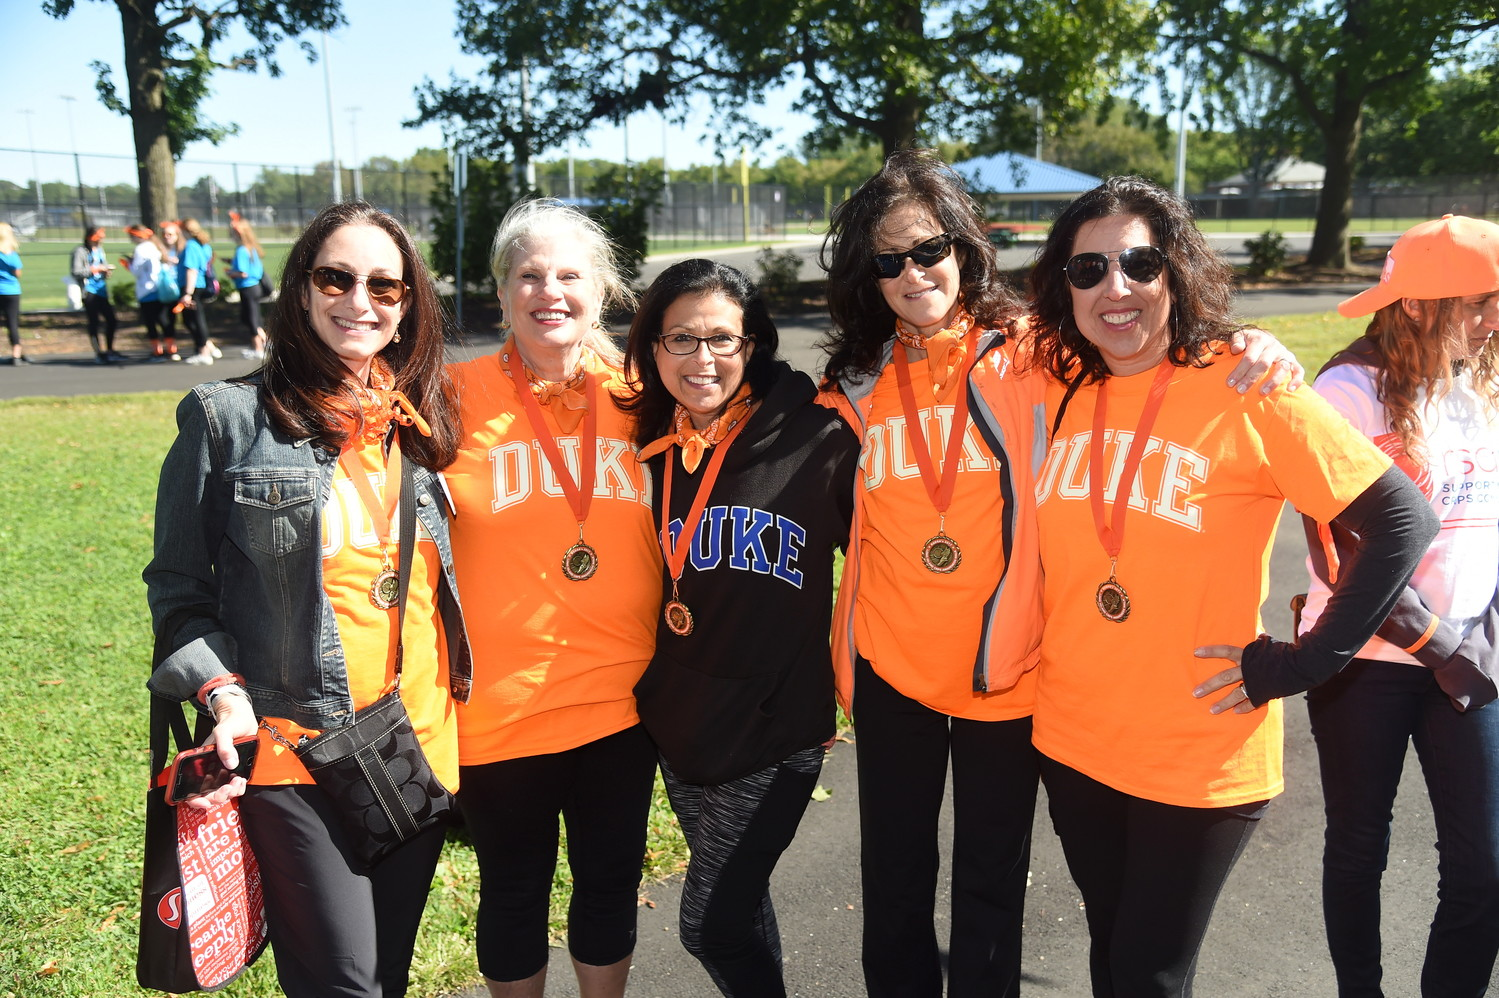 Stacey Udell, who was diagnosed with Complex Regional Pain Syndrome/Reflex Sympathetic Dystrophy six years ago, walked at the second annual RSDSA walk with friends Ellen Lehrman, Wendy Herz and Sheree Levy.